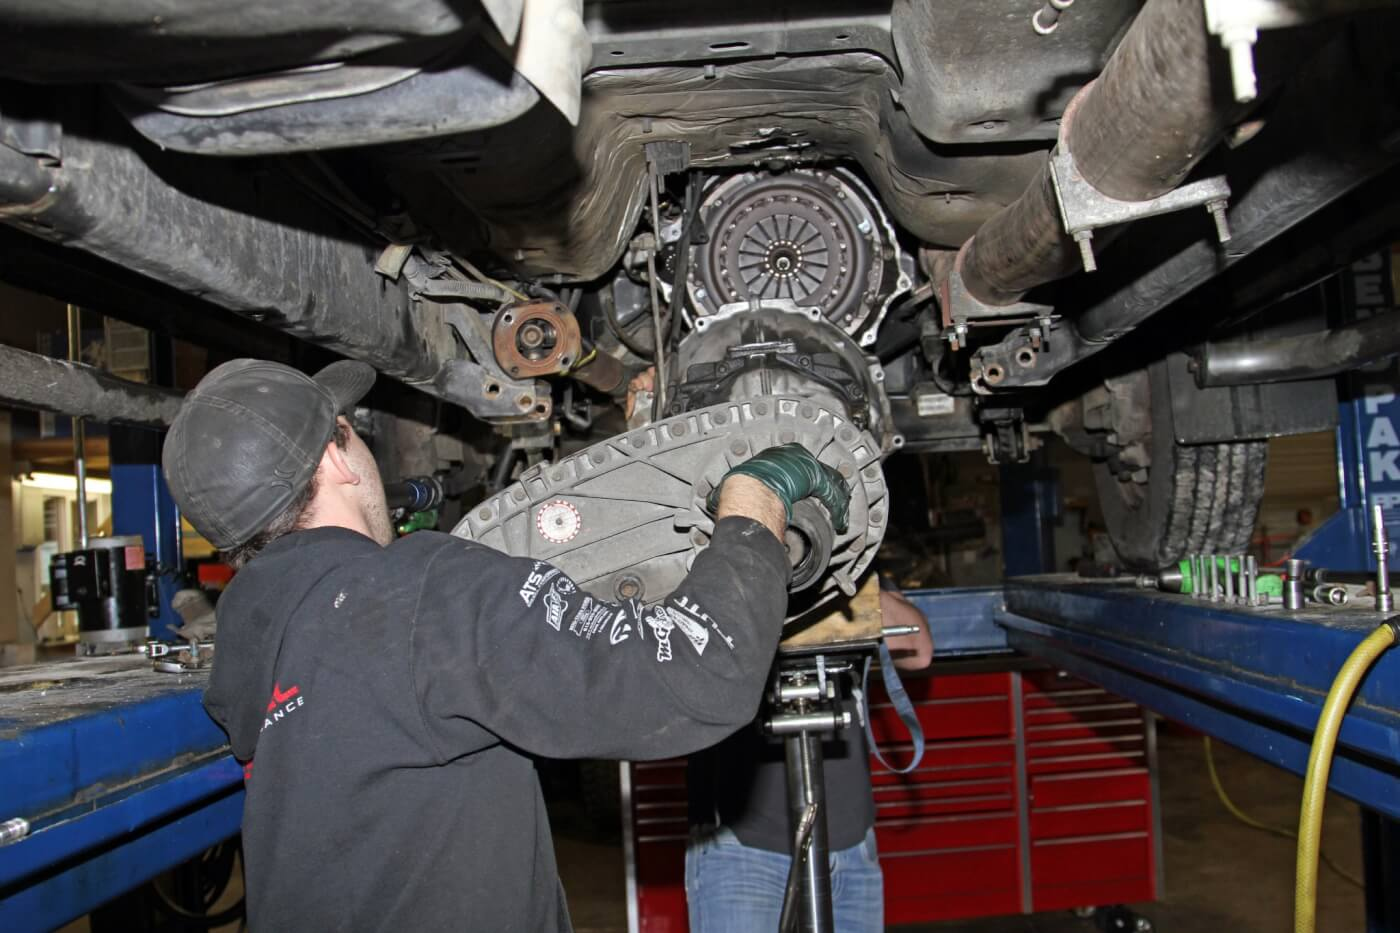 7. With the transmission secure, Meraz removed the bell housing bolts with an impact gun and the long extension with a wobble-socket to allow him to work at an angle and reach all of the mounting bolts. Then, the transmission assembly could be moved back to disengage the input shaft from the clutch and then lowered out of the way.